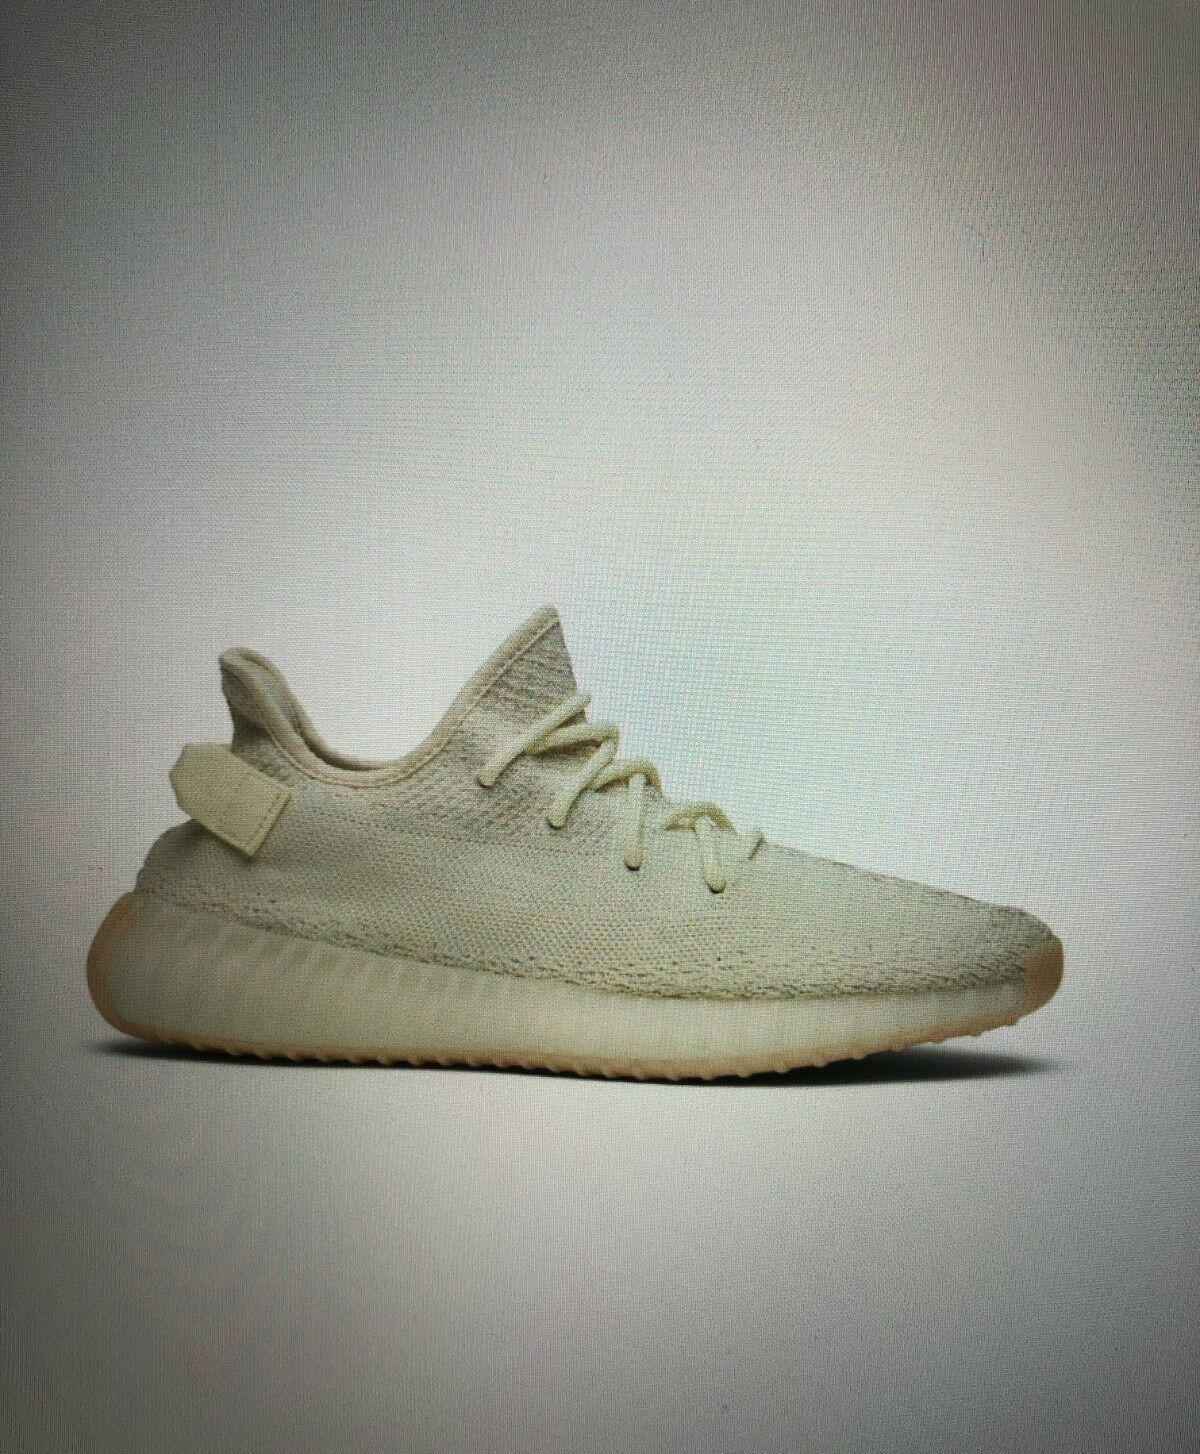 New Adidas YEEZY Boost 350 v2 Butter Size 13 Mens With Box Authentic